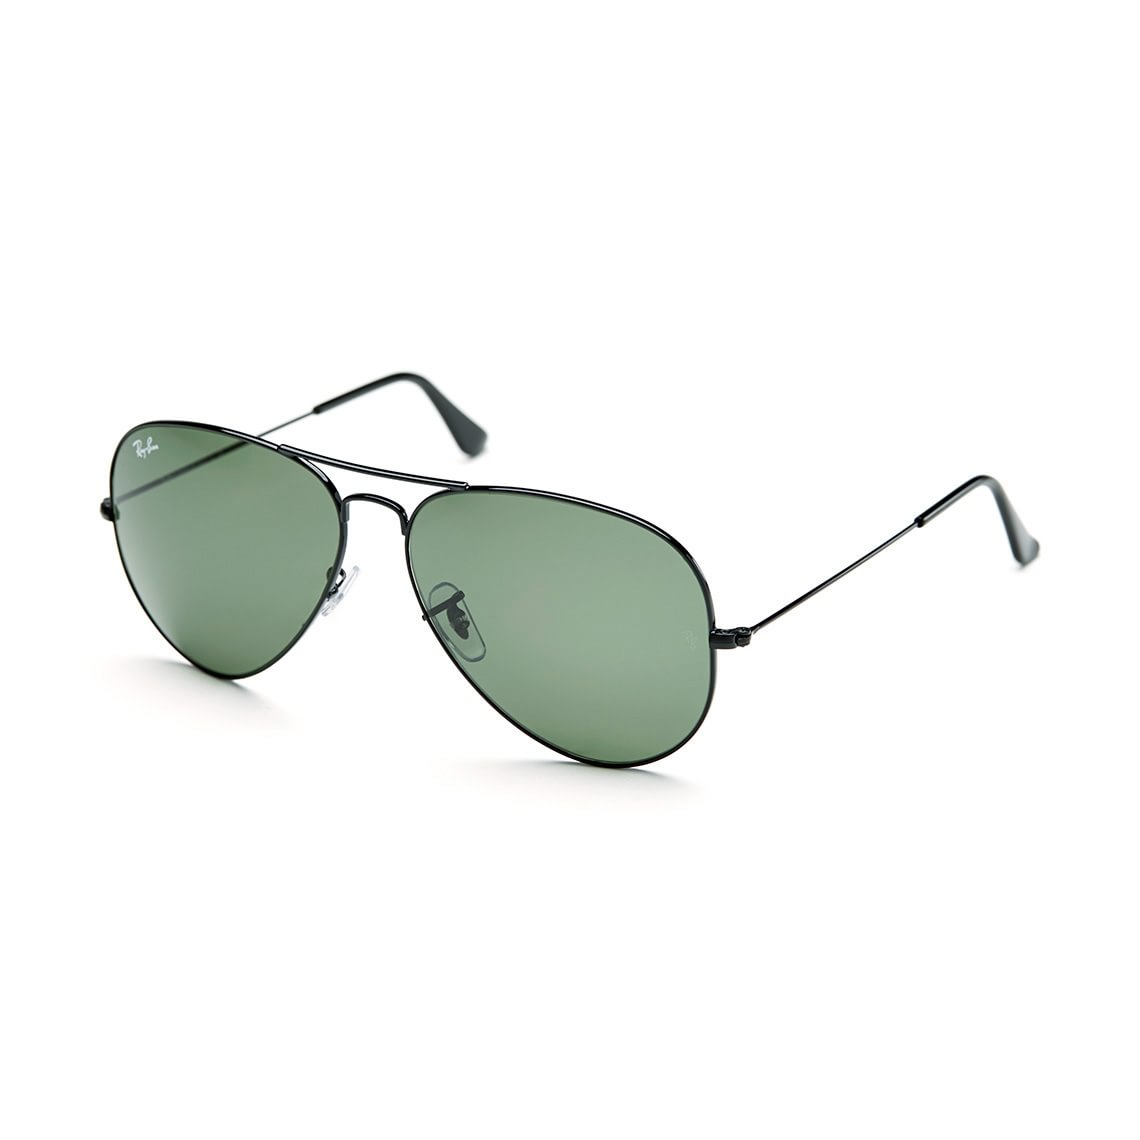 Ray-Ban Aviator RB3026 L2821 62